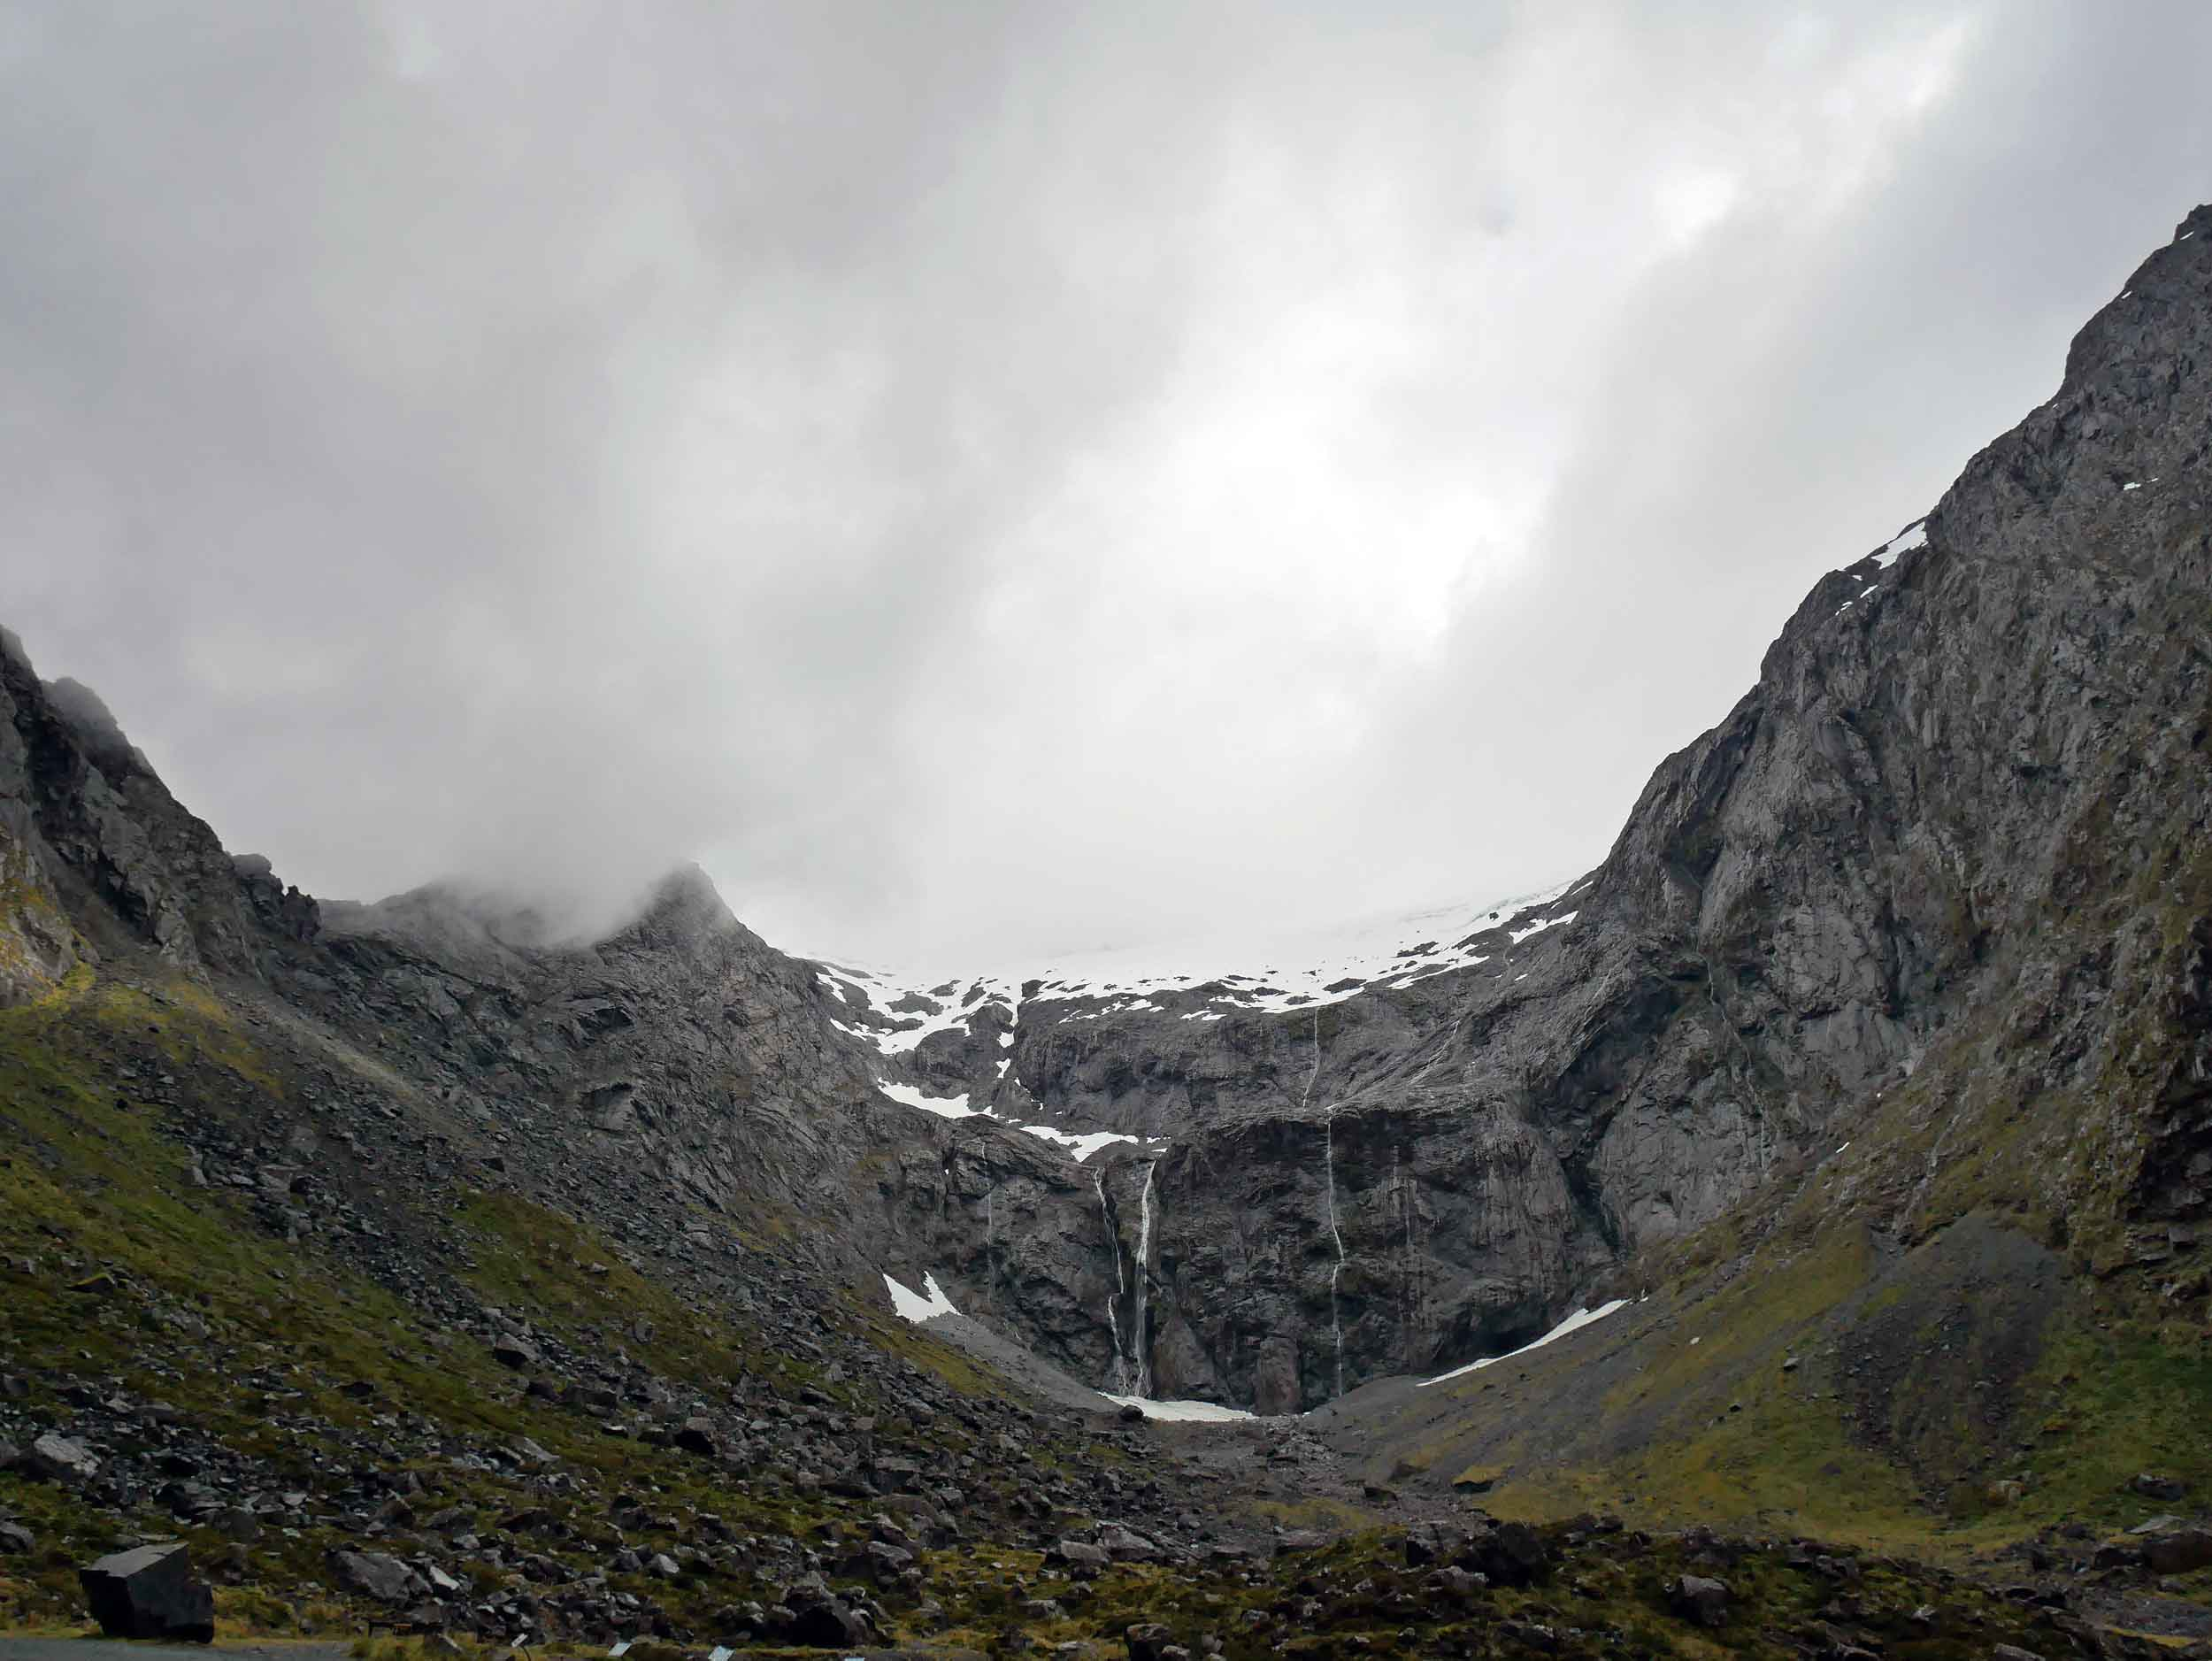 The icy view as we waited to pass through the 1.2 km long Homer Tunnel with unlined granite walls and 1:10 decent into the Cleddau Valley and Milford Sound (Jan 9).